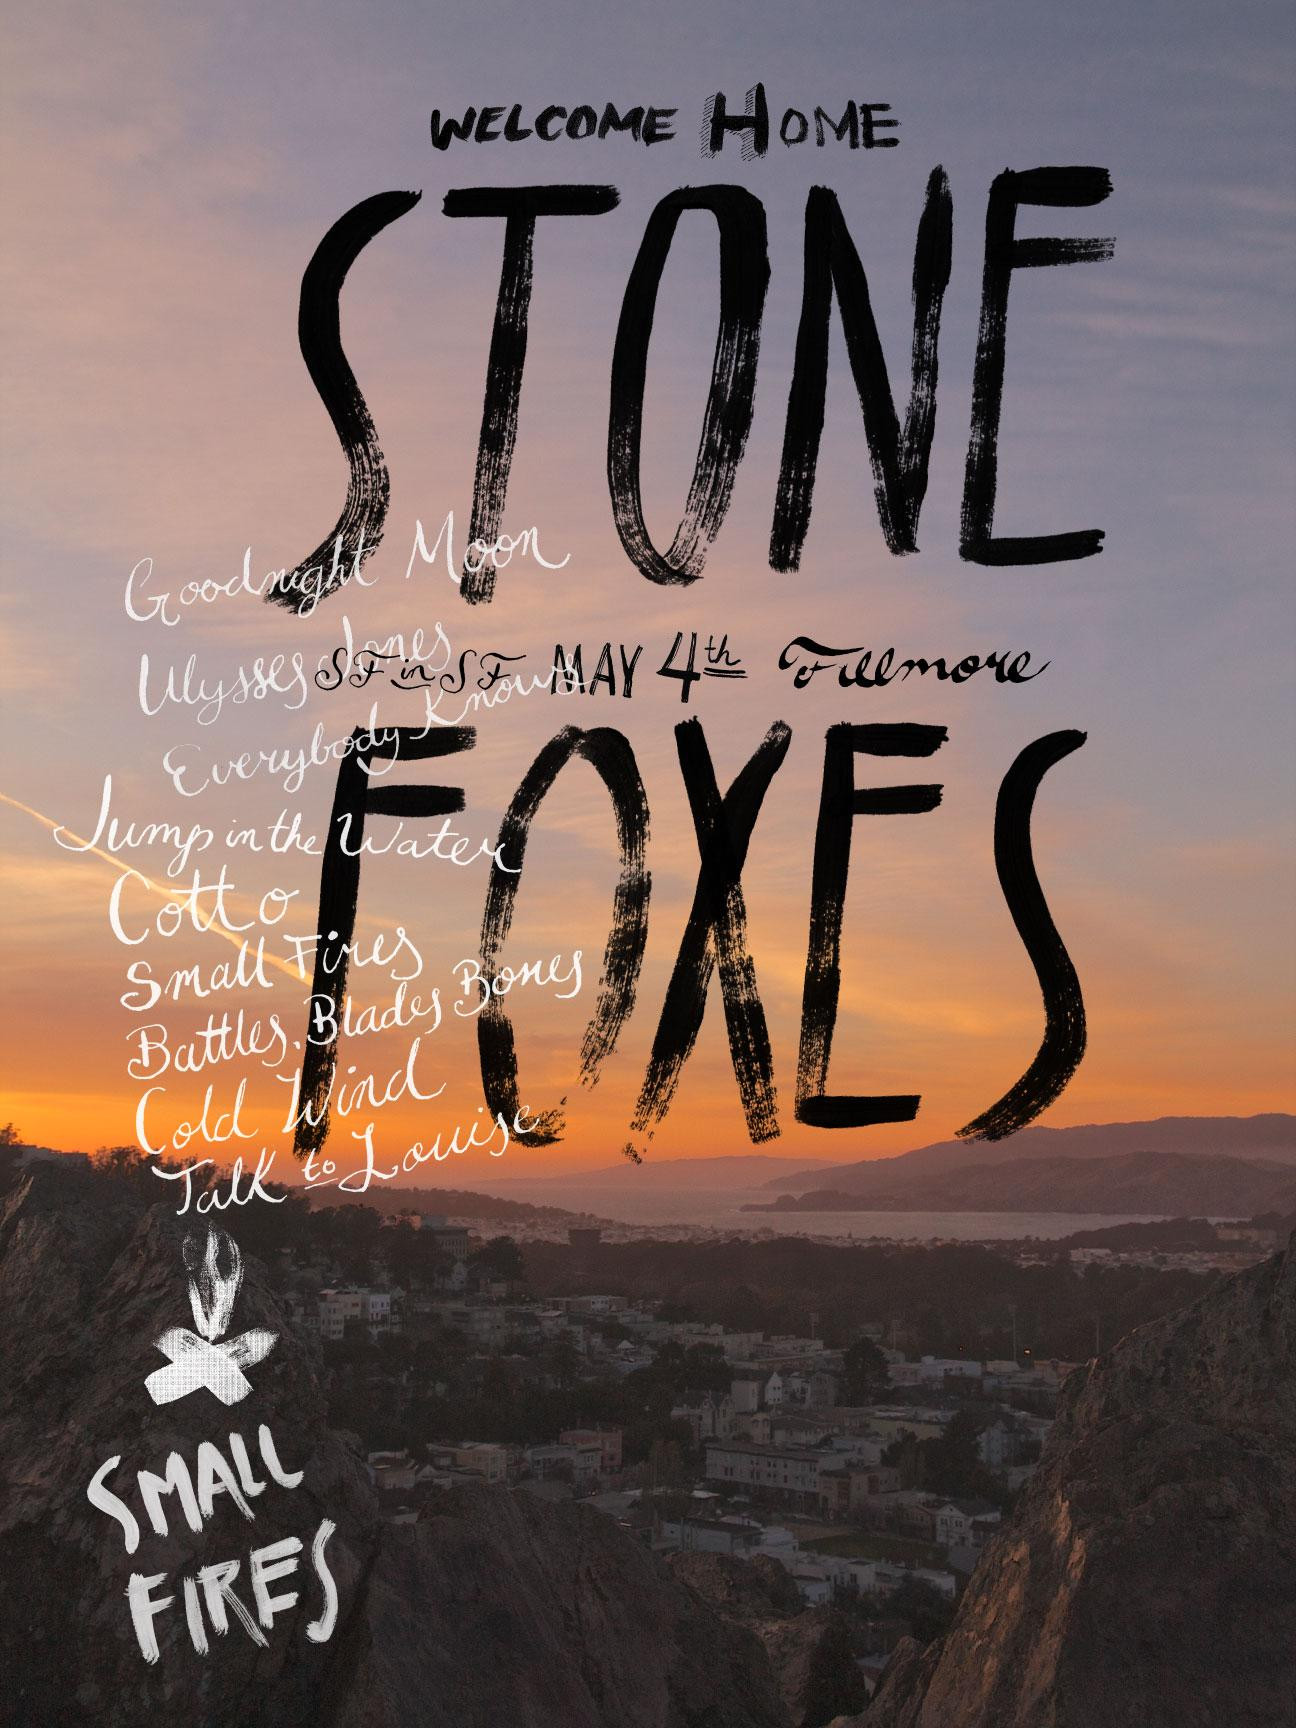 The Stone Foxes - A Homecoming Poster - image 5 - student project